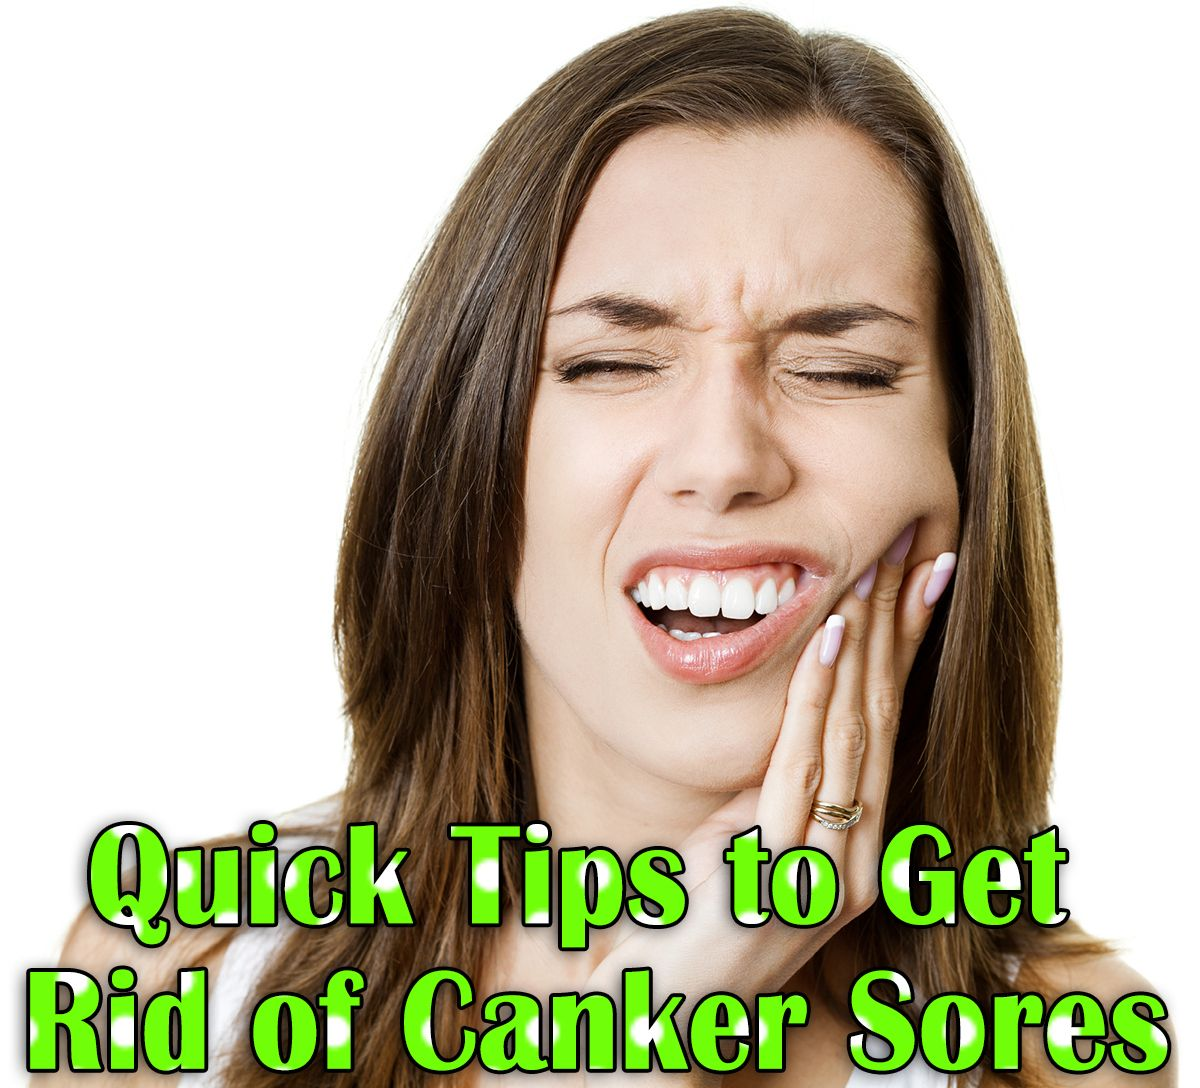 Quick Tips To Get Rid Of Canker Sores